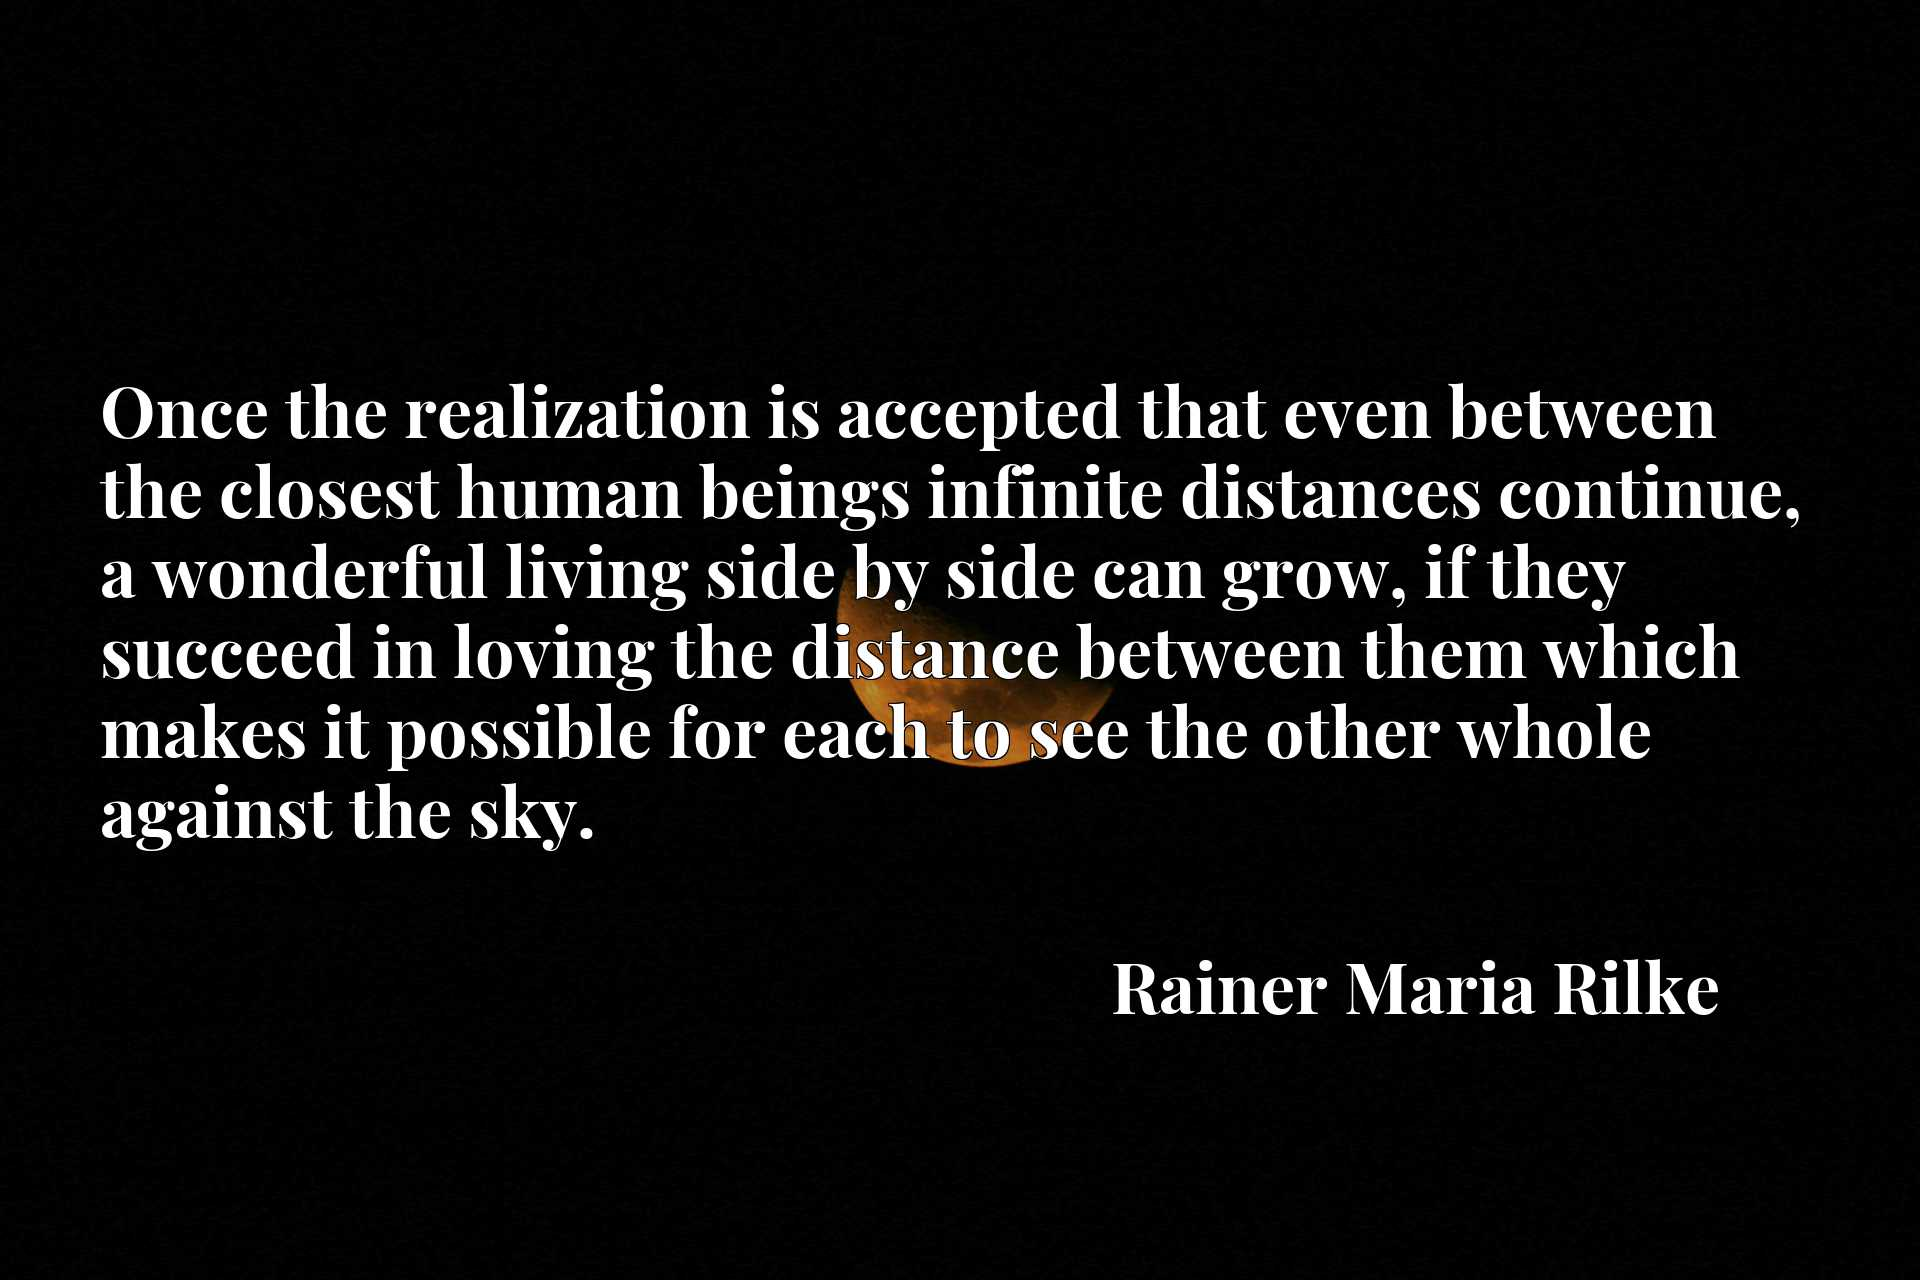 Once the realization is accepted that even between the closest human beings infinite distances continue, a wonderful living side by side can grow, if they succeed in loving the distance between them which makes it possible for each to see the other whole against the sky.